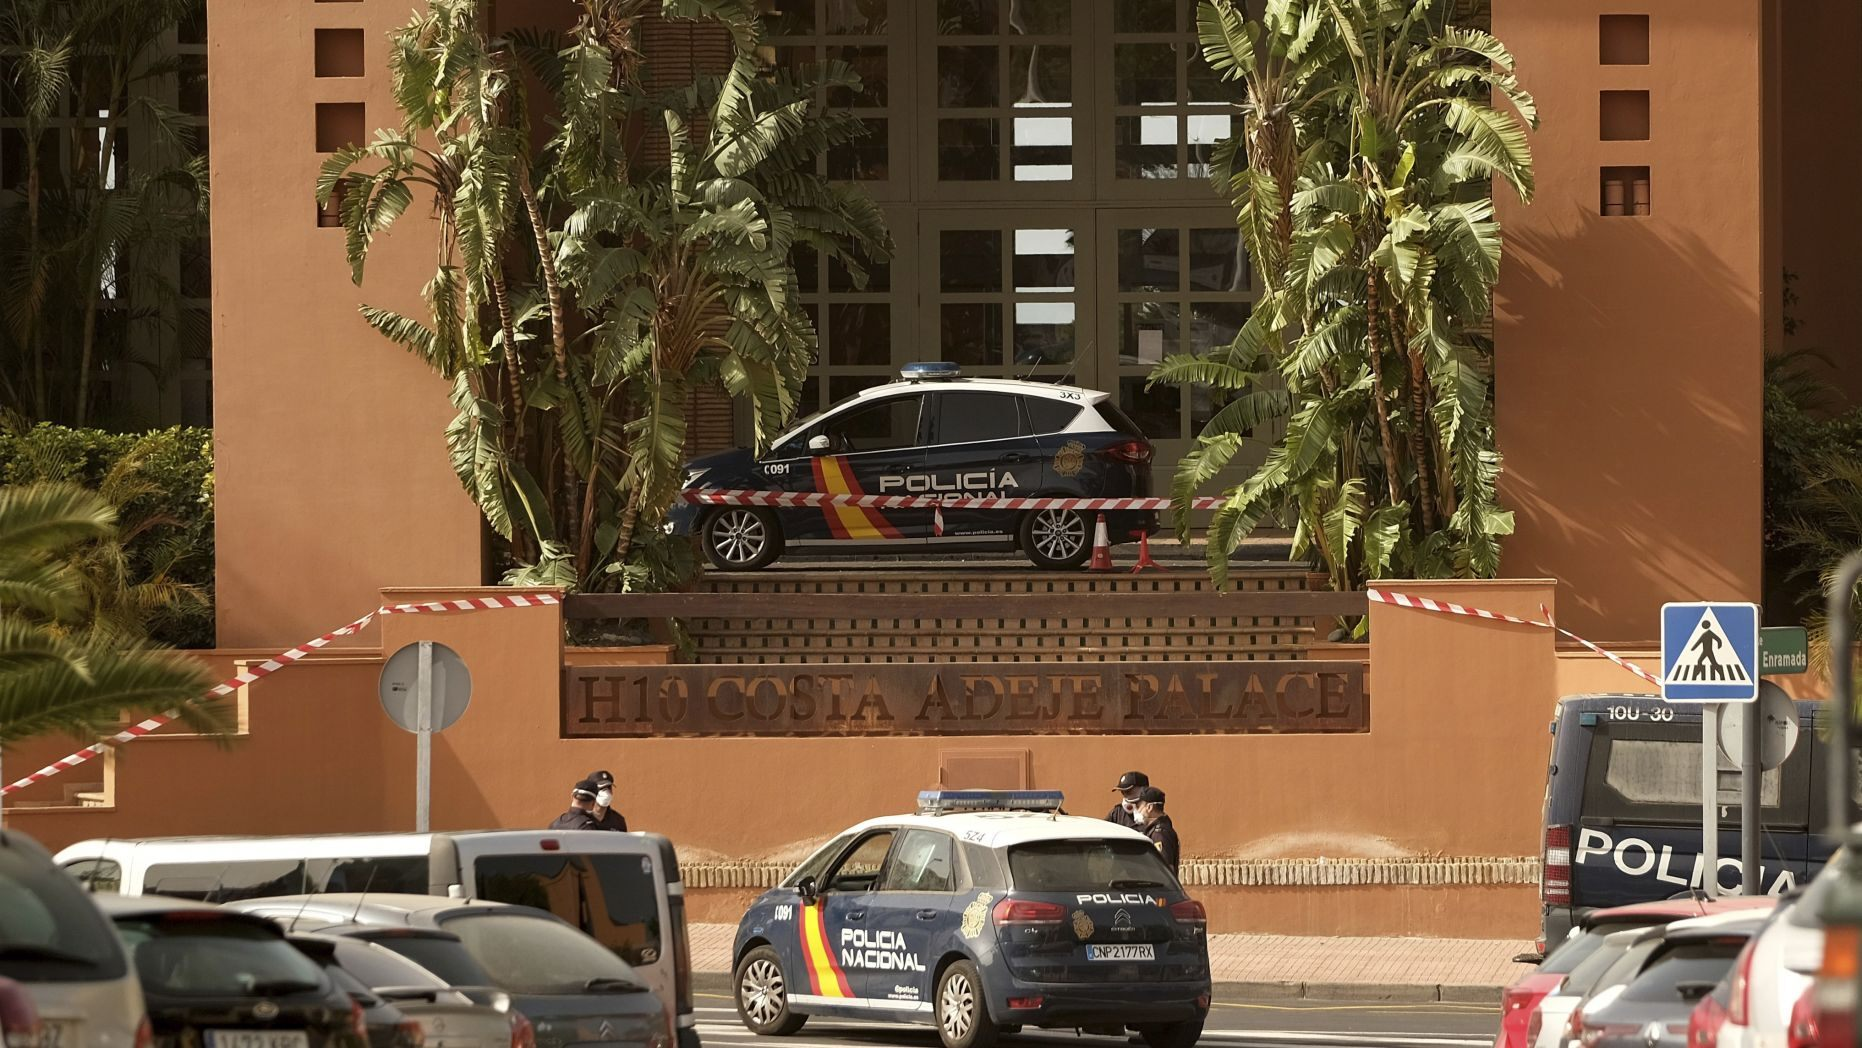 Hotel With 1,000 Tourists Placed on Lockdown Following Suspected Coronavirus Case In Canary Islands